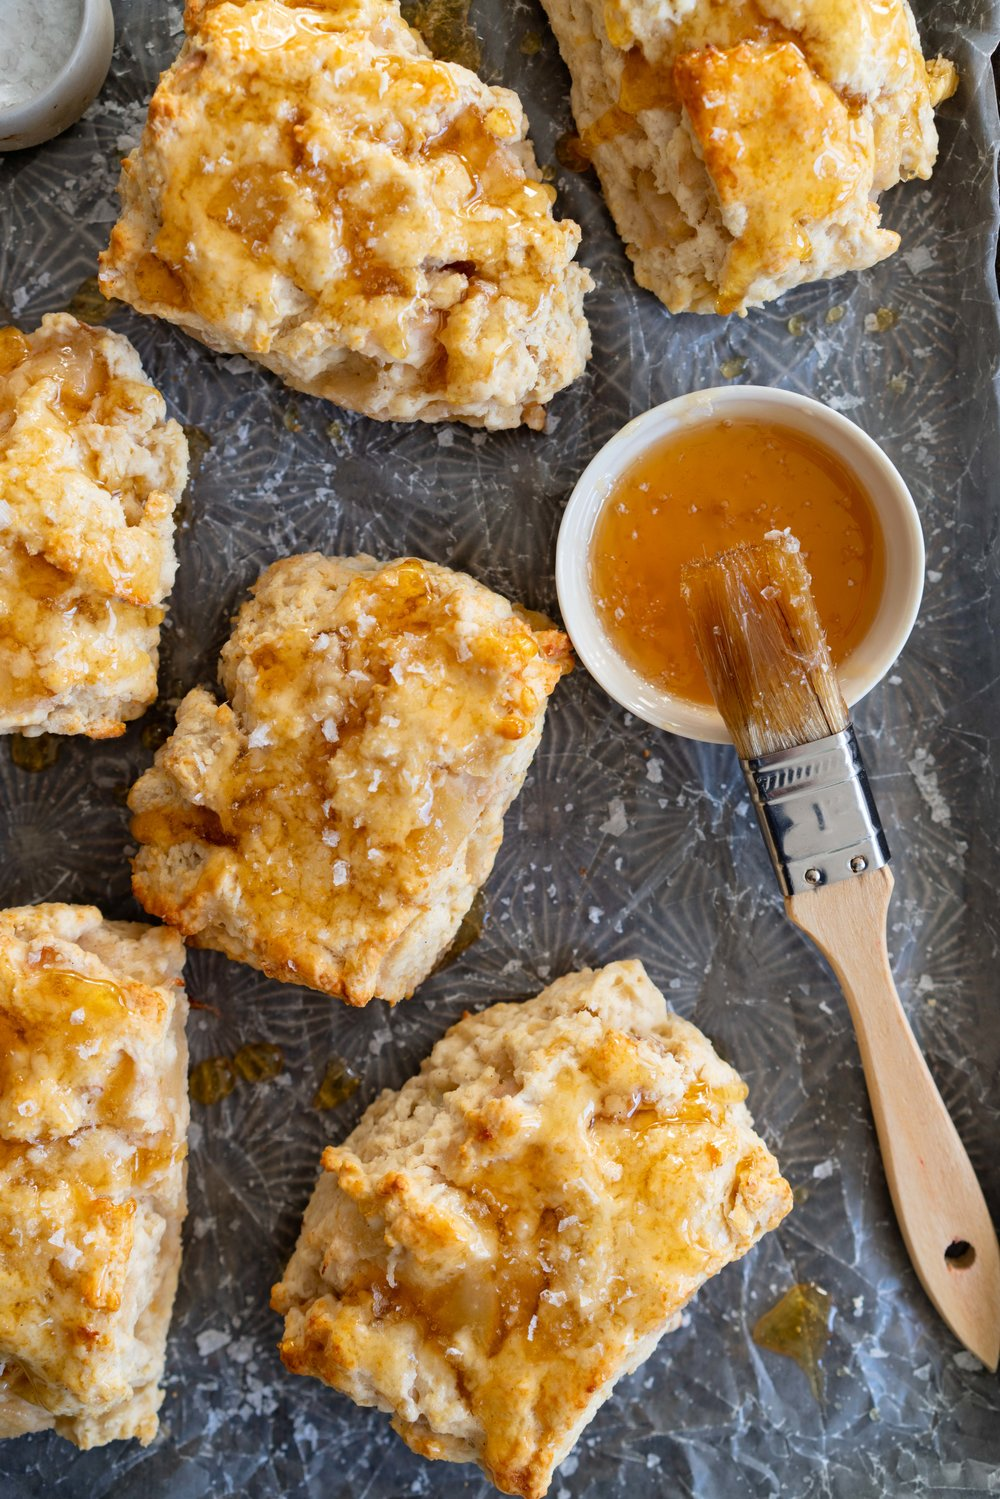 Roasted Pear and Vanilla Bean Scones with Salty Honey Glaze - Giant Craggy Scones filled with pear chunks held together with tender scone dough, and finished with a sticky honey glaze and a generous dose of flaky sea salt.